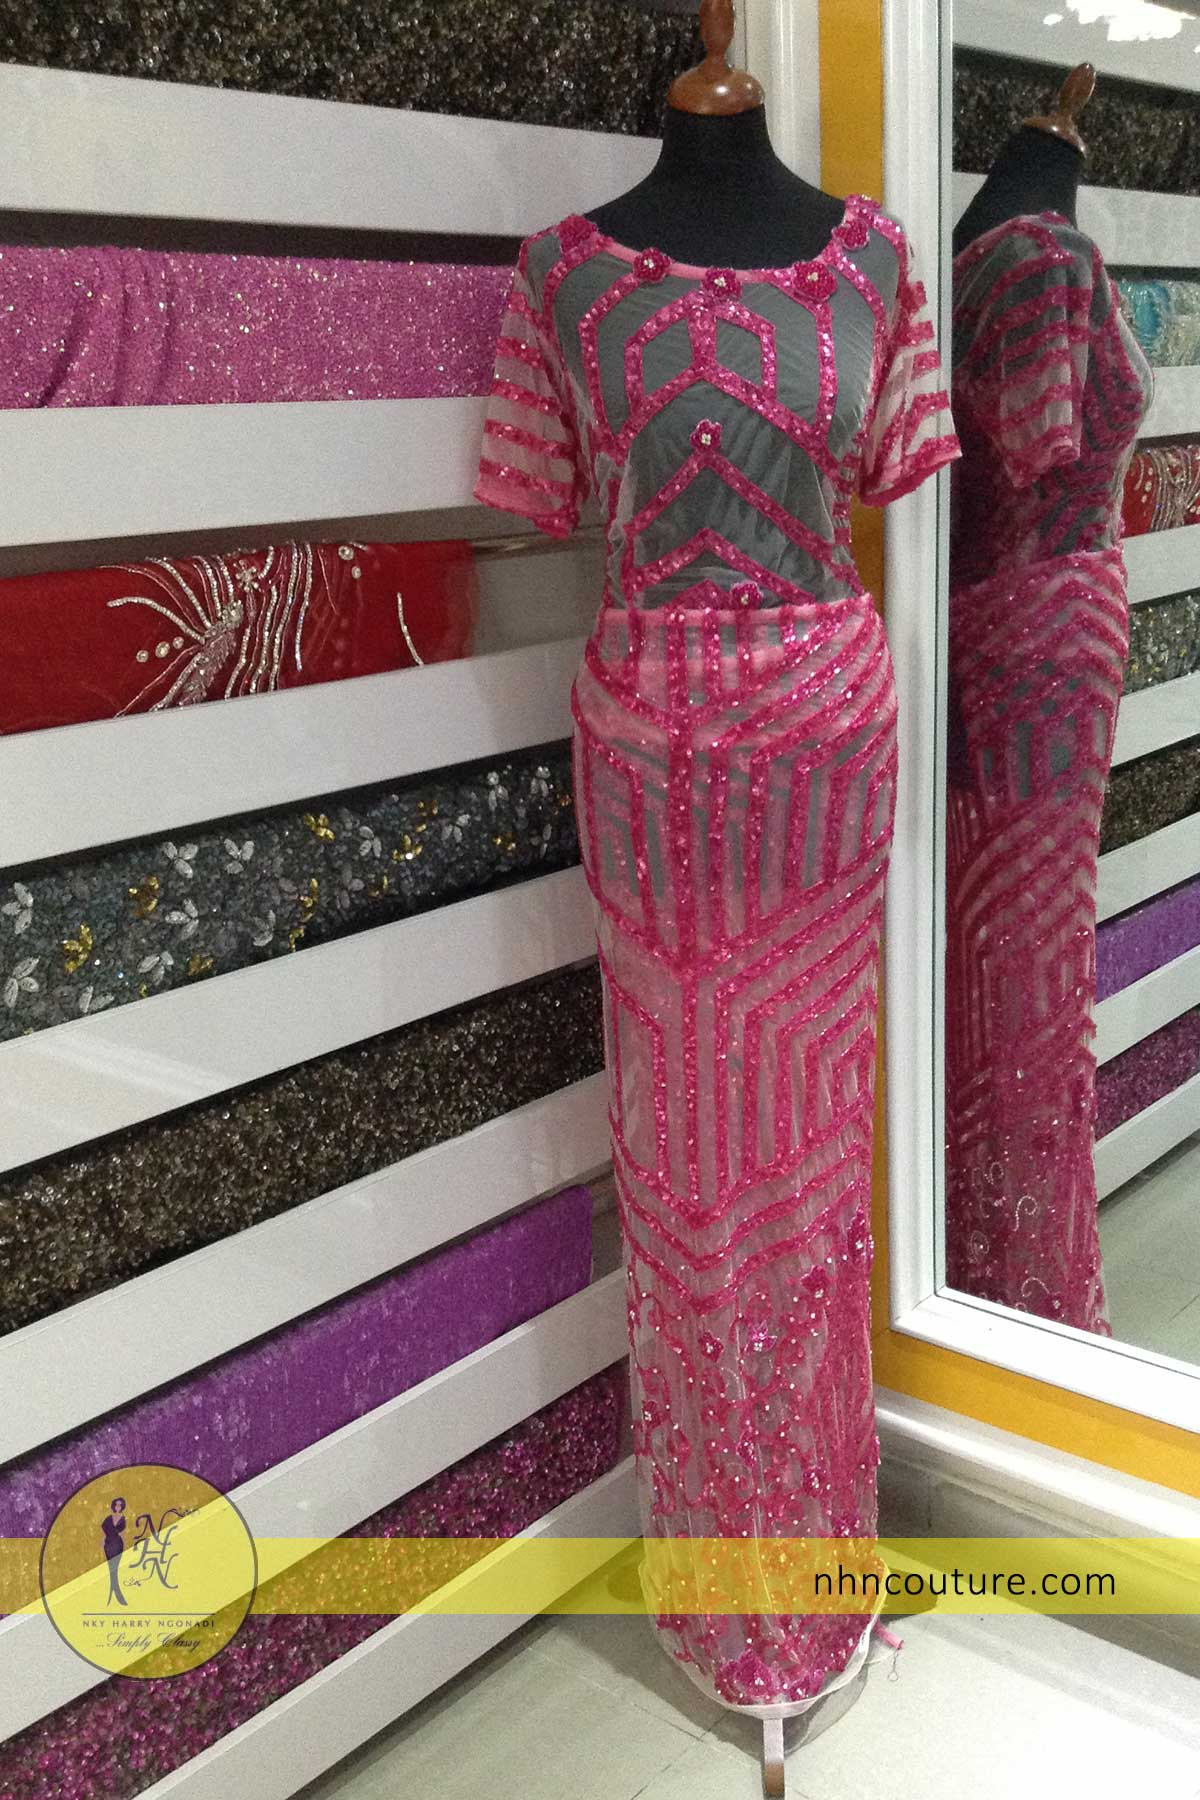 NHN-Couture_ready-to-wear_pink-asoebi_nigerian-traditional-attire